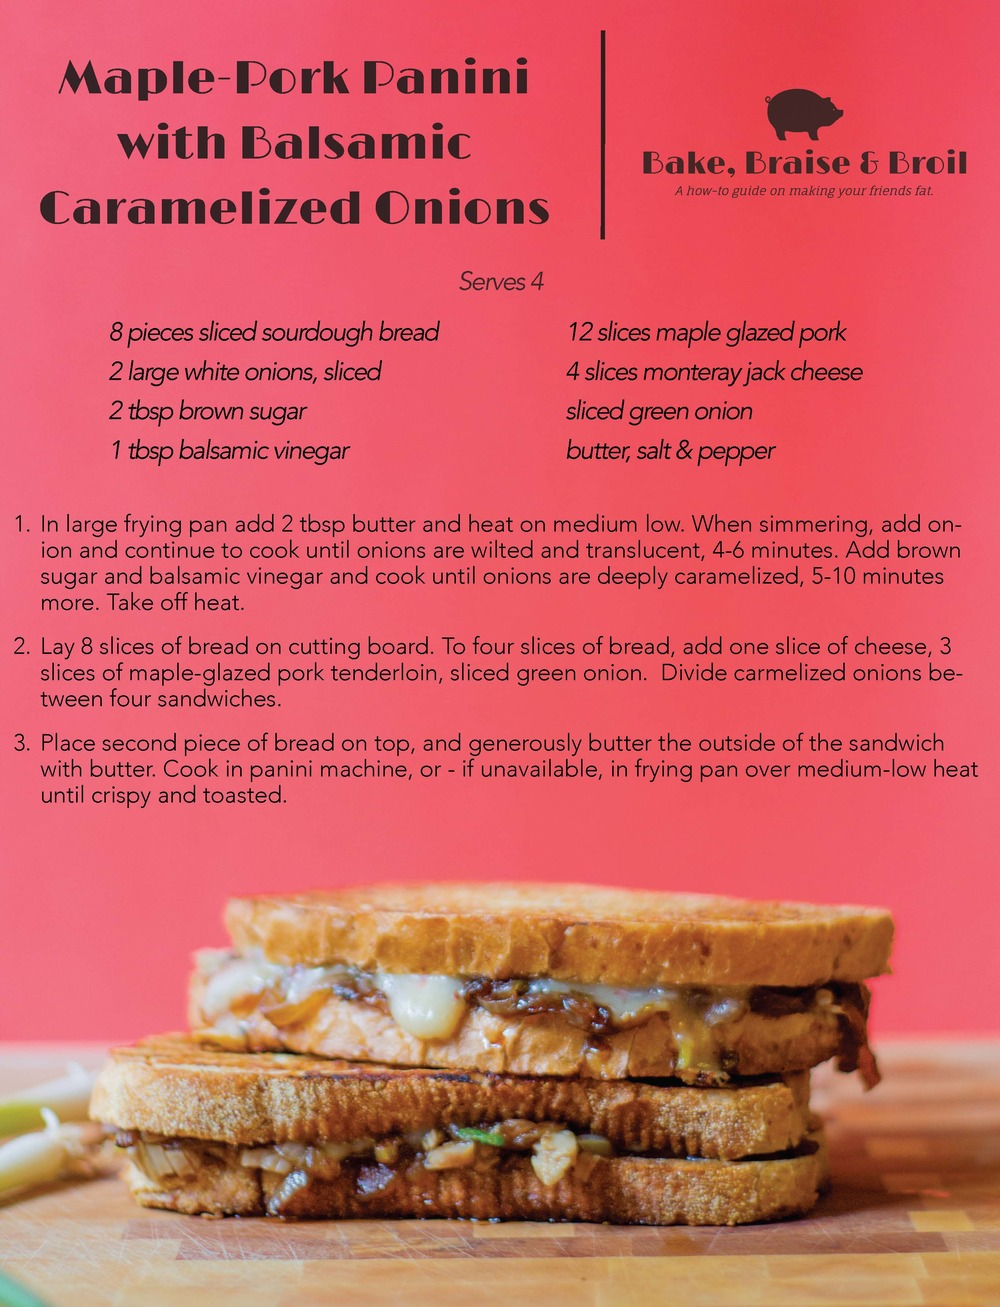 Maple Pork Panini Recipe Card